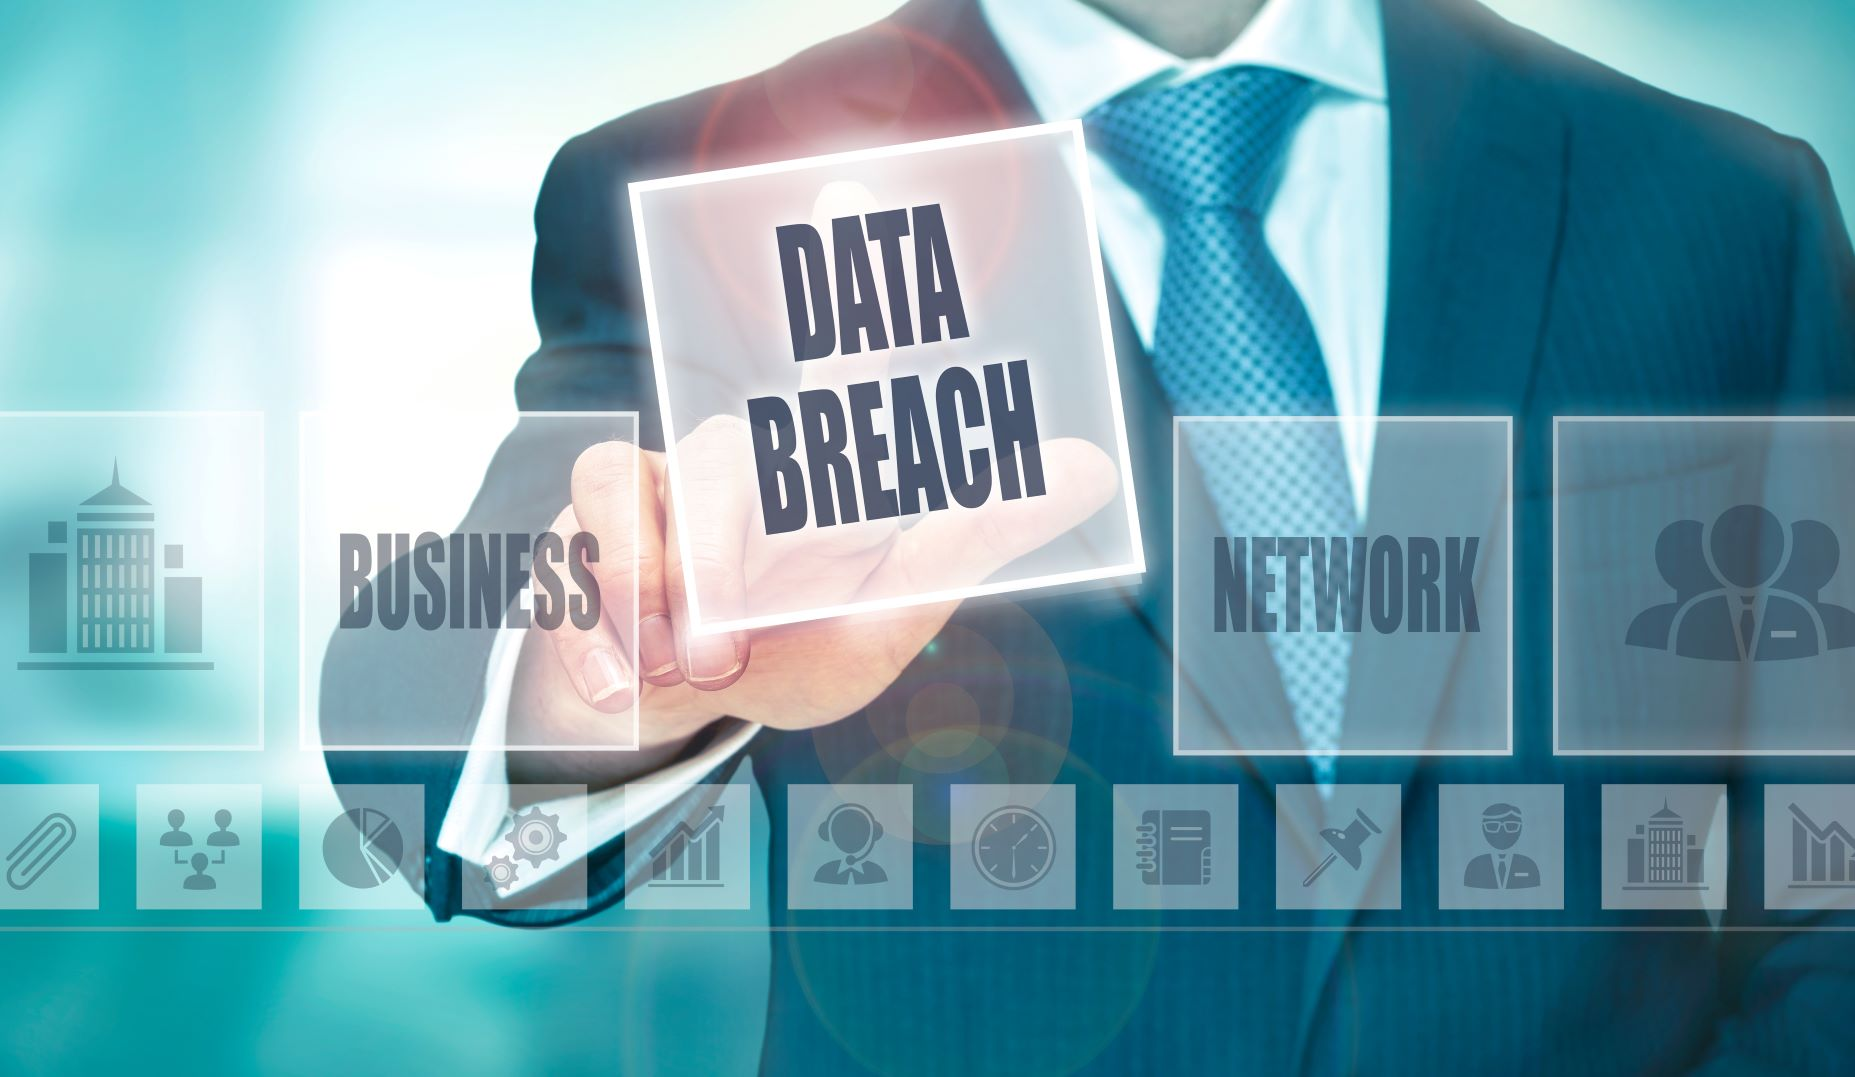 Data Breach Running: Avoid Possible Business Risks